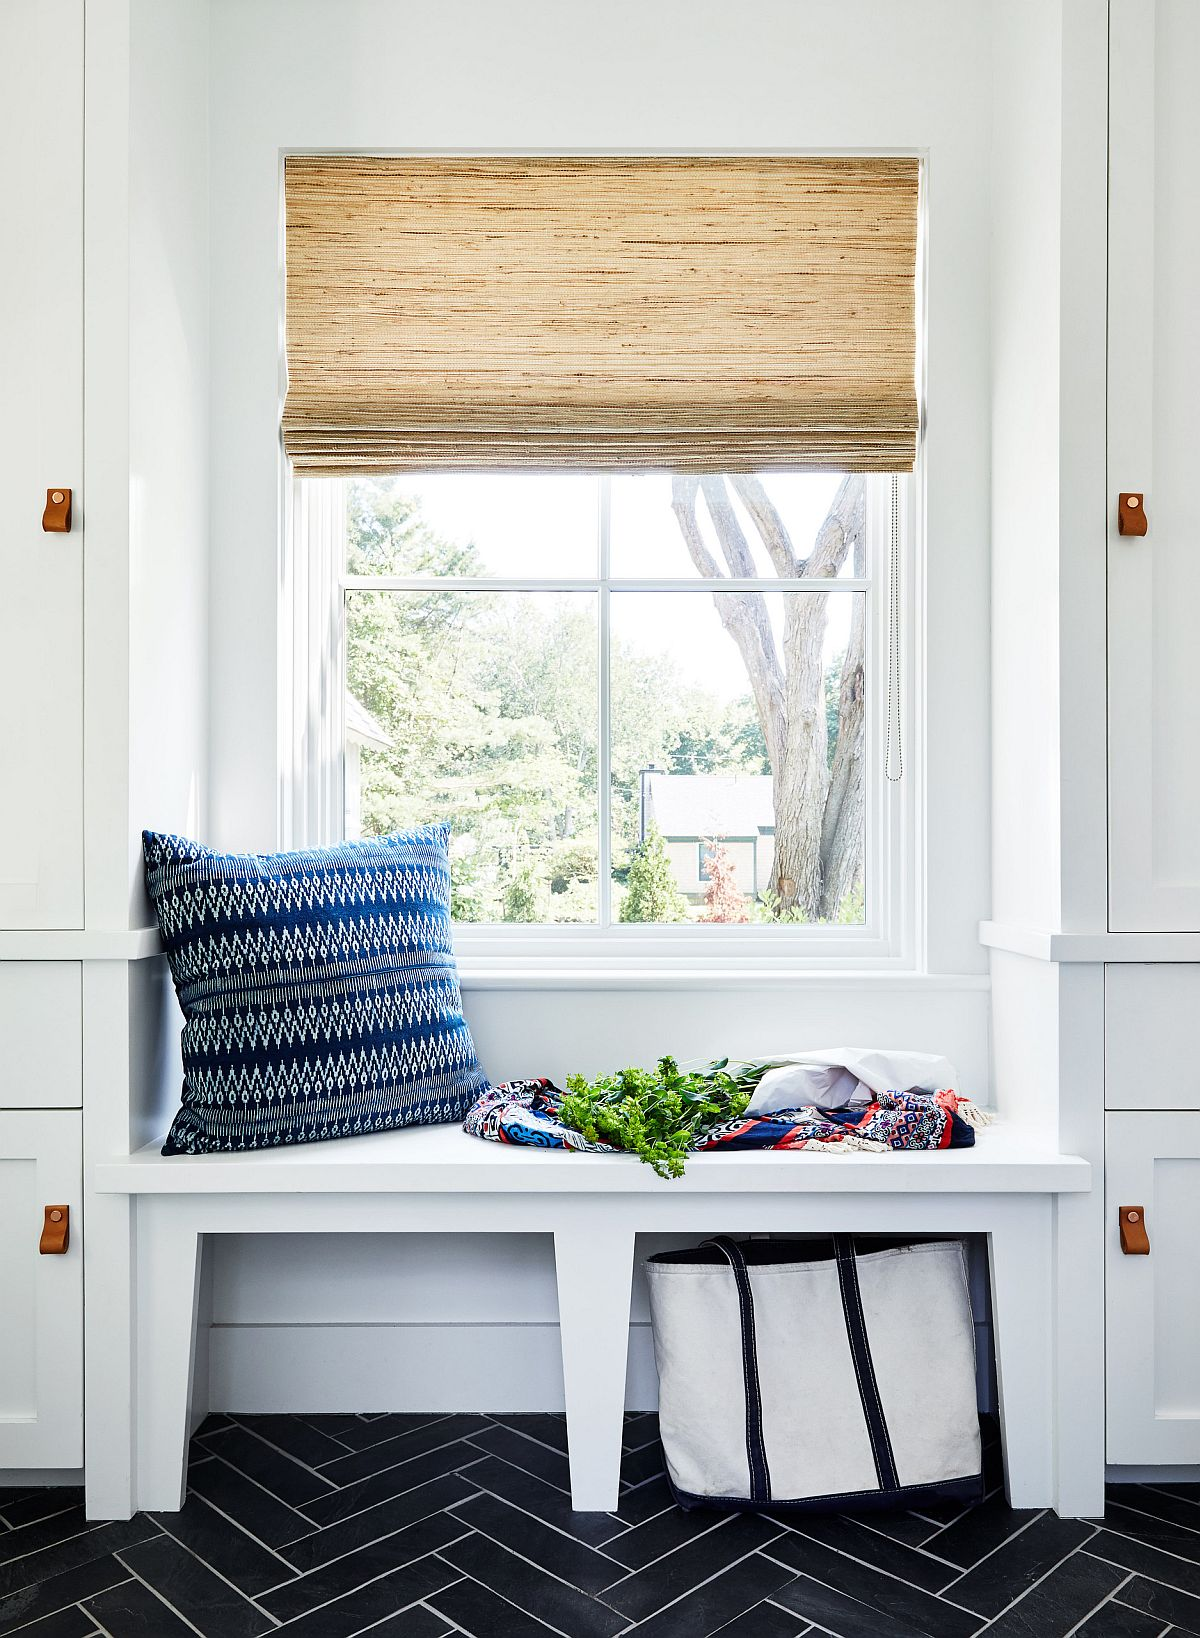 Tiny-mudroom-and-entry-with-a-small-window-seat-and-a-bright-blue-throw-pillow-11351